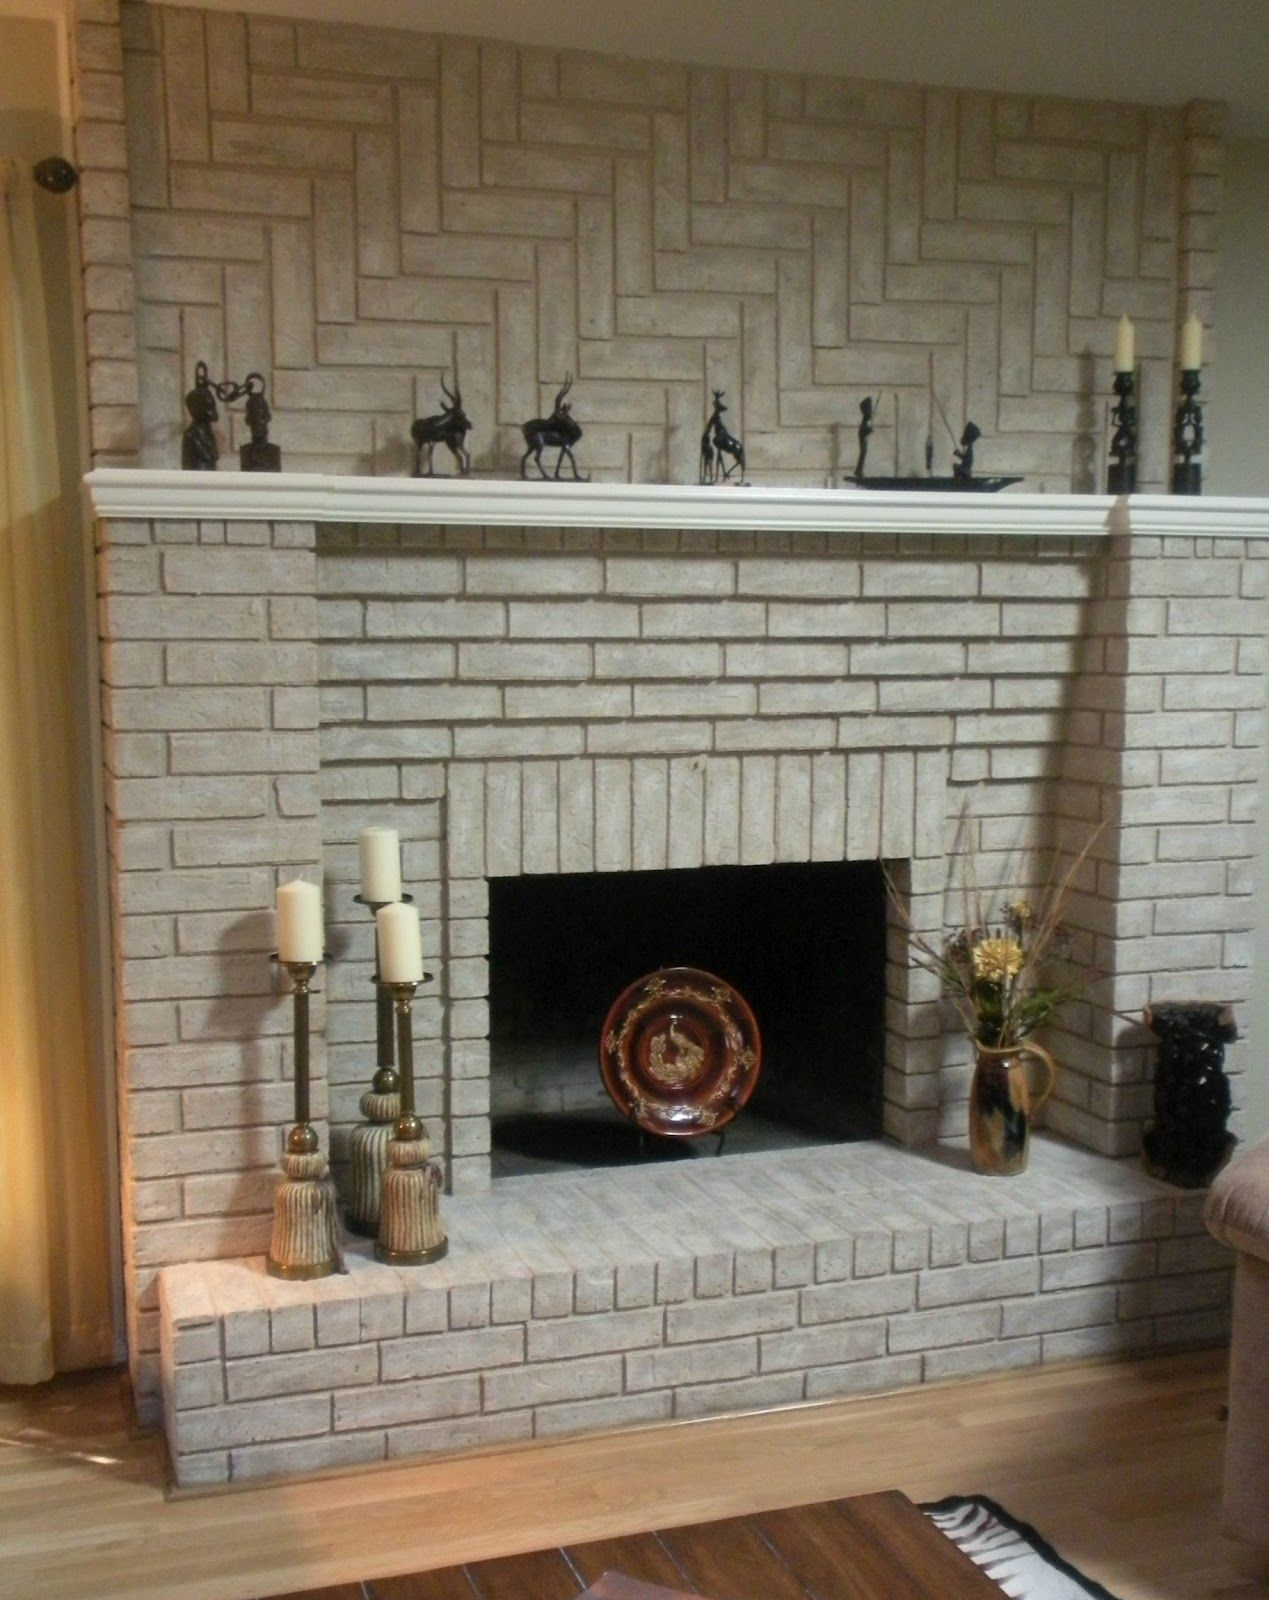 Brick Fireplaces Designs Ideas | ... Fireplace Brick, You Can Cover Up The